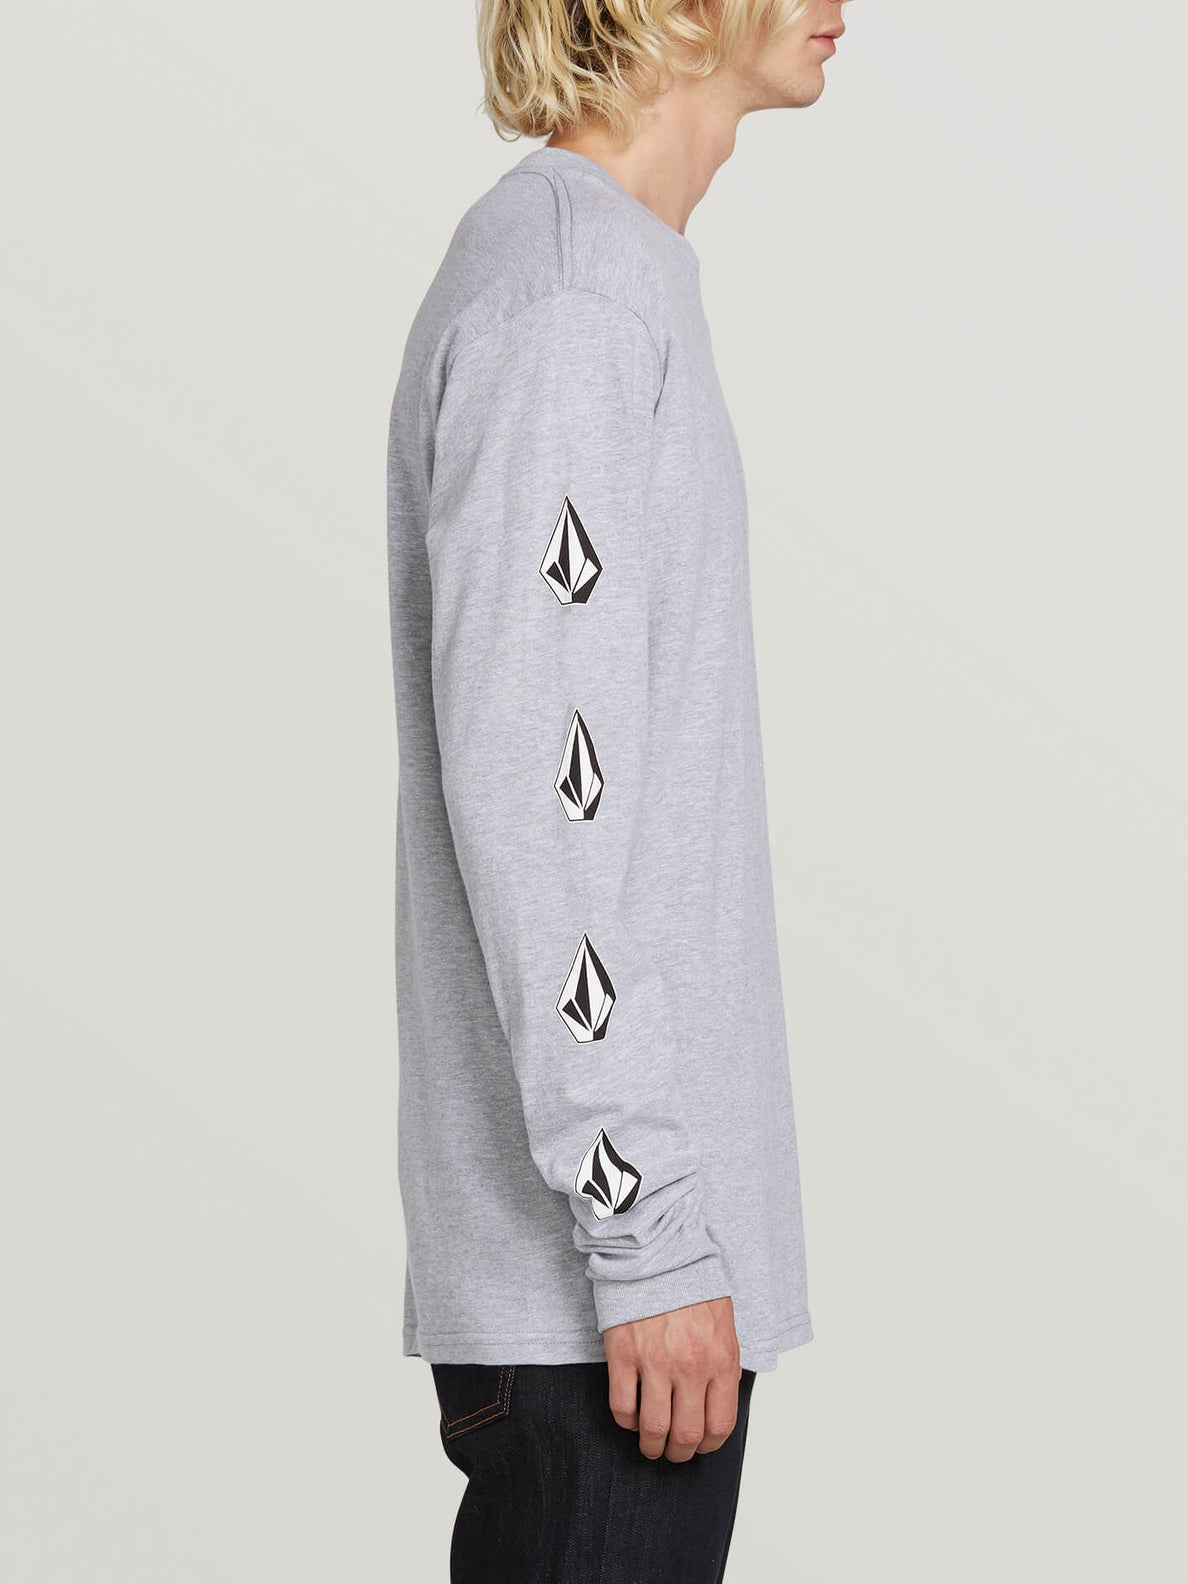 Deadly Stones Long Sleeve Tee - Grey (A3631702_GRY) [1]